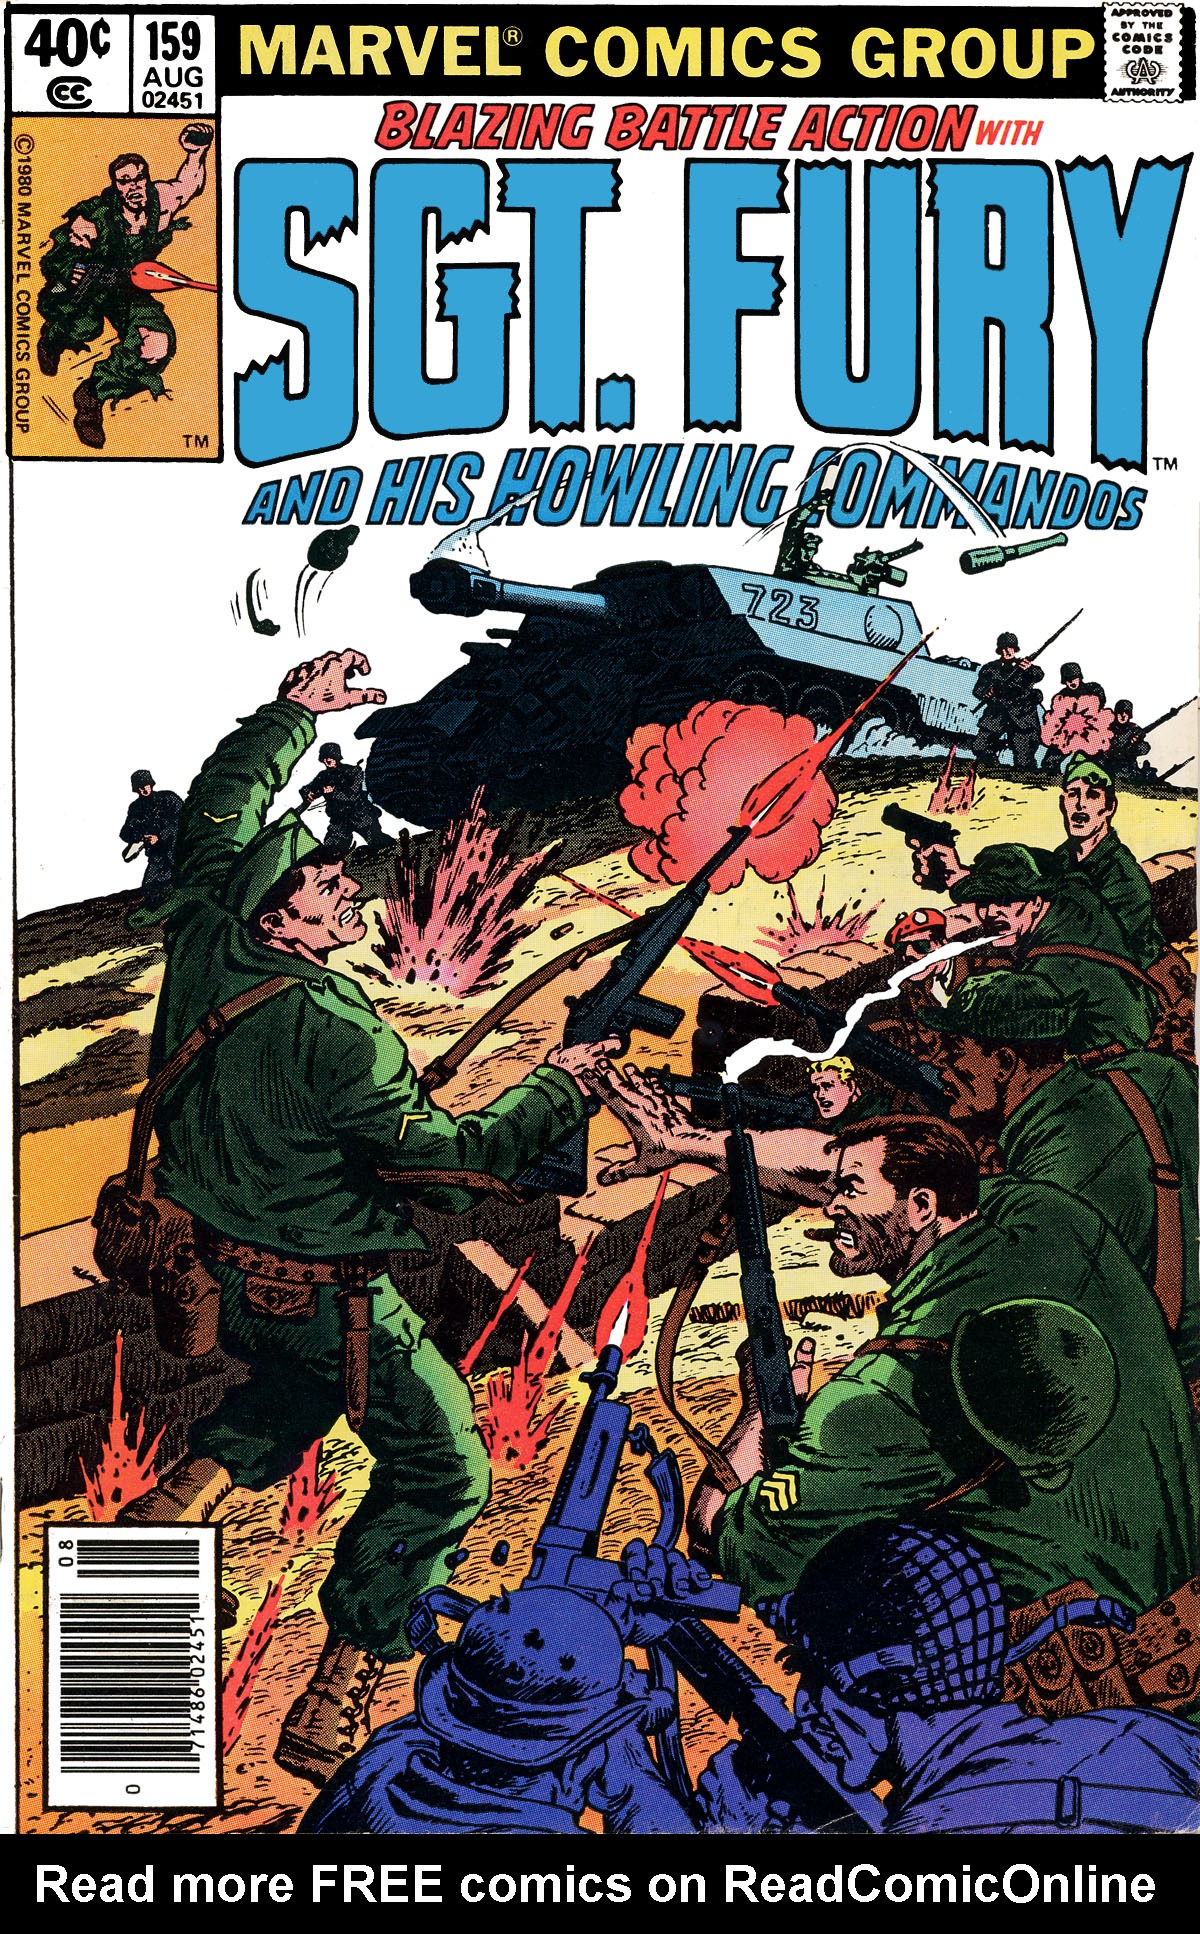 Read online Sgt. Fury comic -  Issue #159 - 1